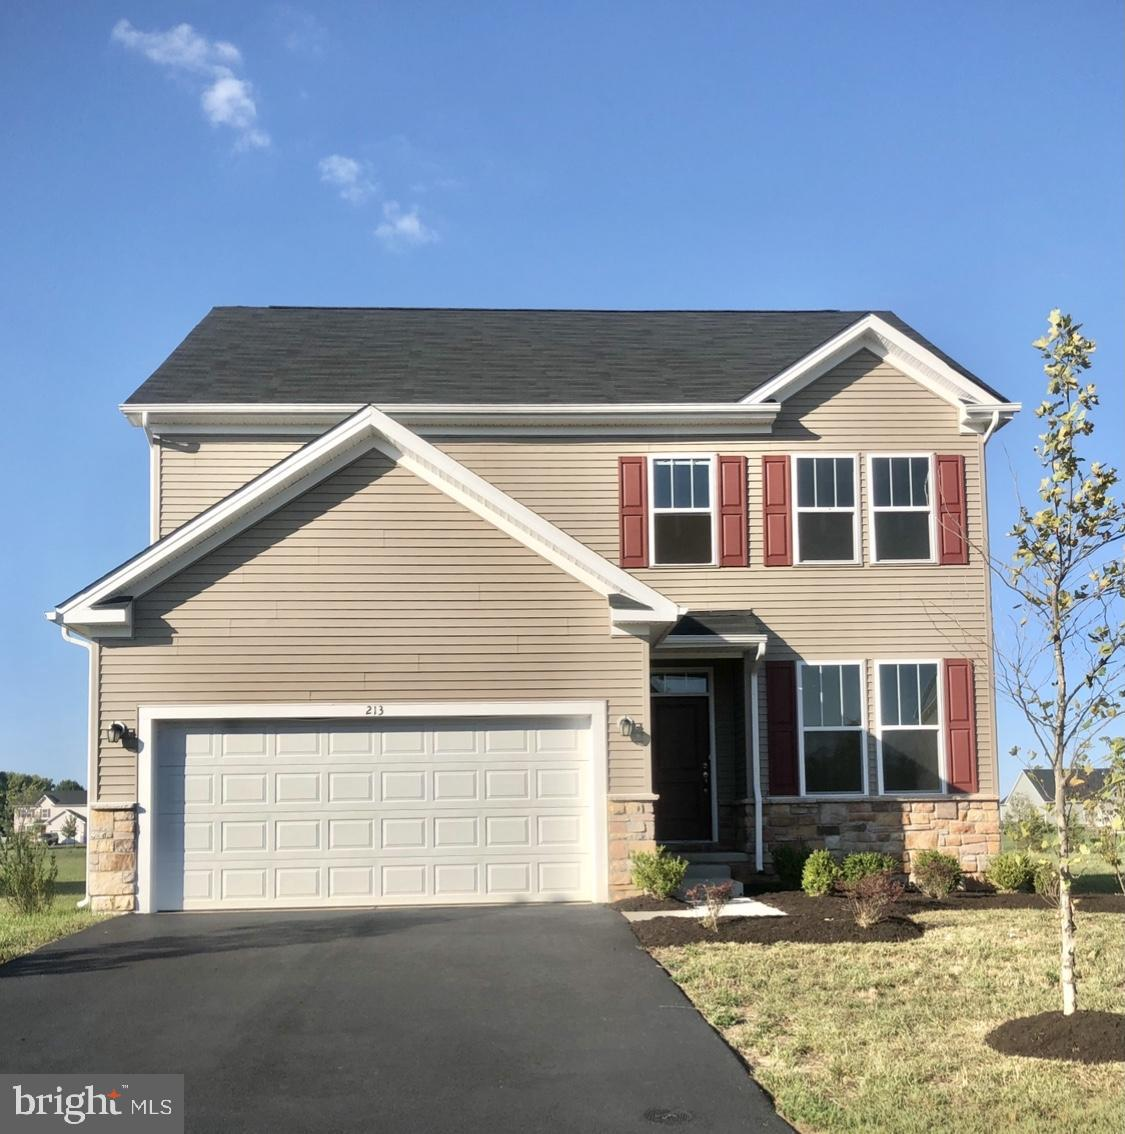 4 YEAR OLD NEW CONSTRUCTION HOME IN BEAUTIFUL HYETTS CROSSING DEVELOPMENT IN MIDDLETOWN DELAWARE. 2 LEVEL PLUS BASEMENT. SPACIOUS BACKYARD. ALL STAINLESS STEEL KITCHEN WITH DOUBLE OVEN AND LARGER REFRIGERATOR. WASHER DRYER UNITS UPSTAIRS. HIS & HER SINKS IN MASTER BATHROOM. 2 CAR GARAGE. SEALED COATED DRIVEWAY.